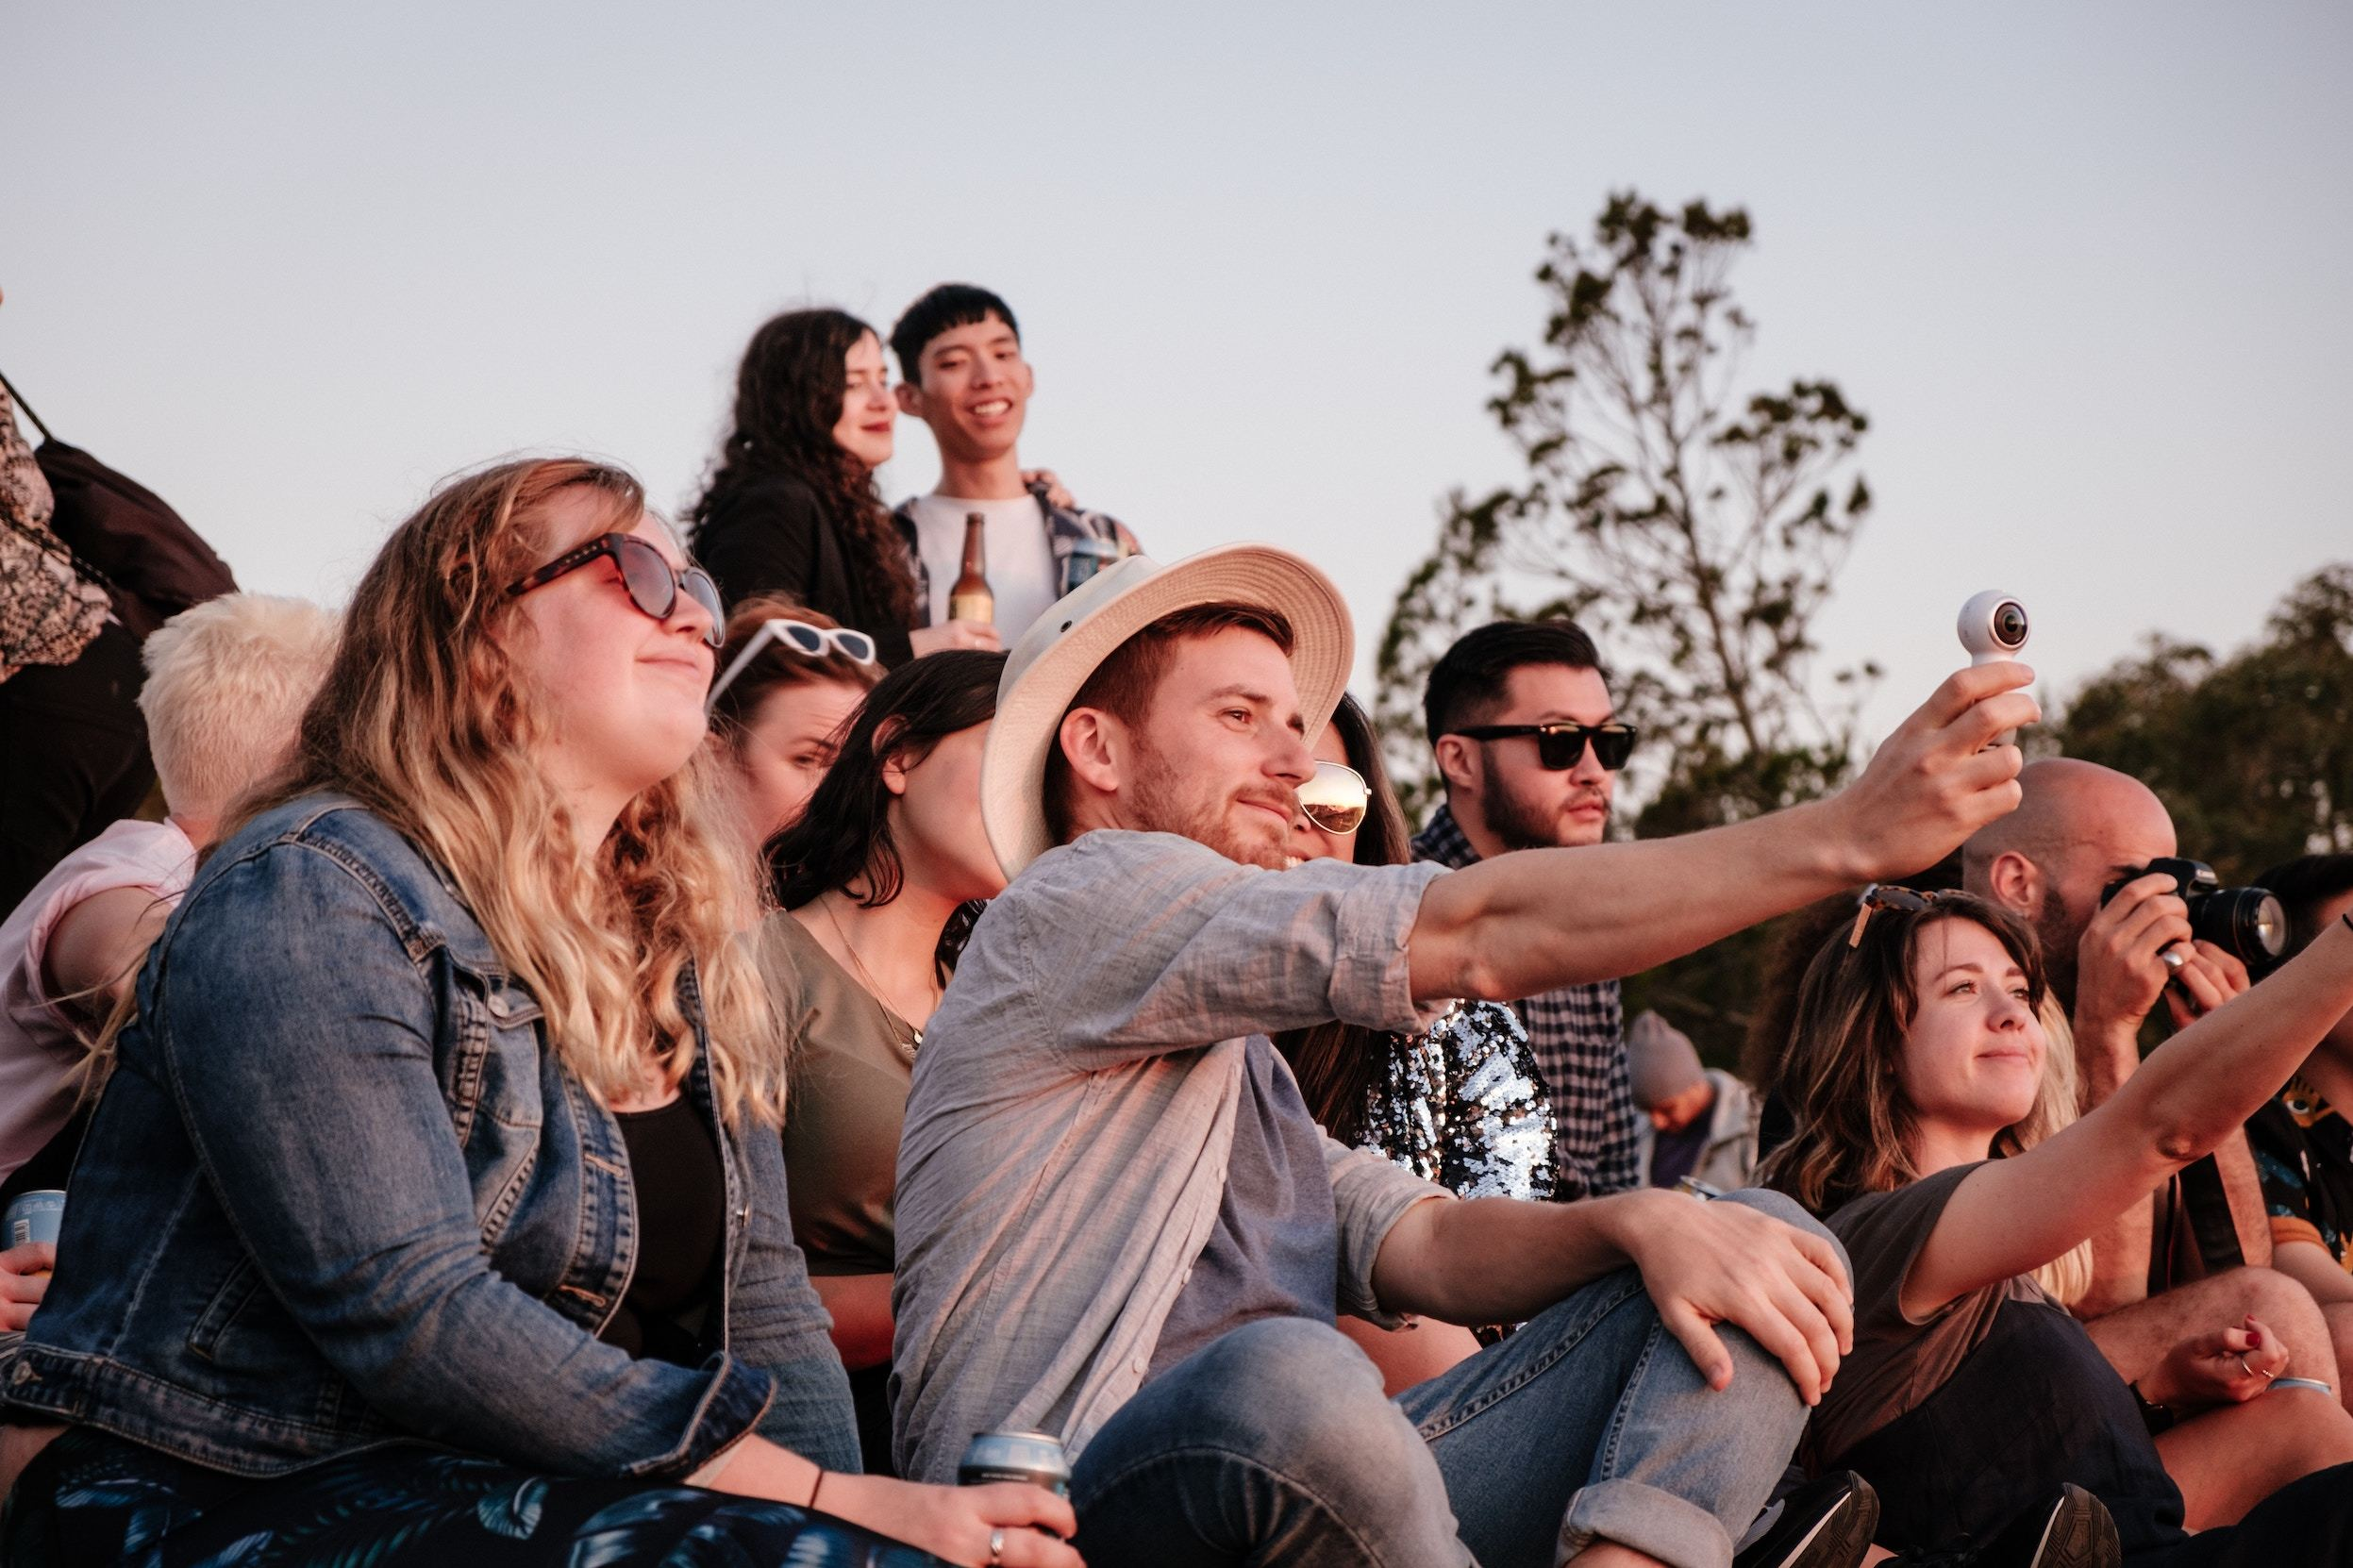 group of people sitting in nature recording a sunset